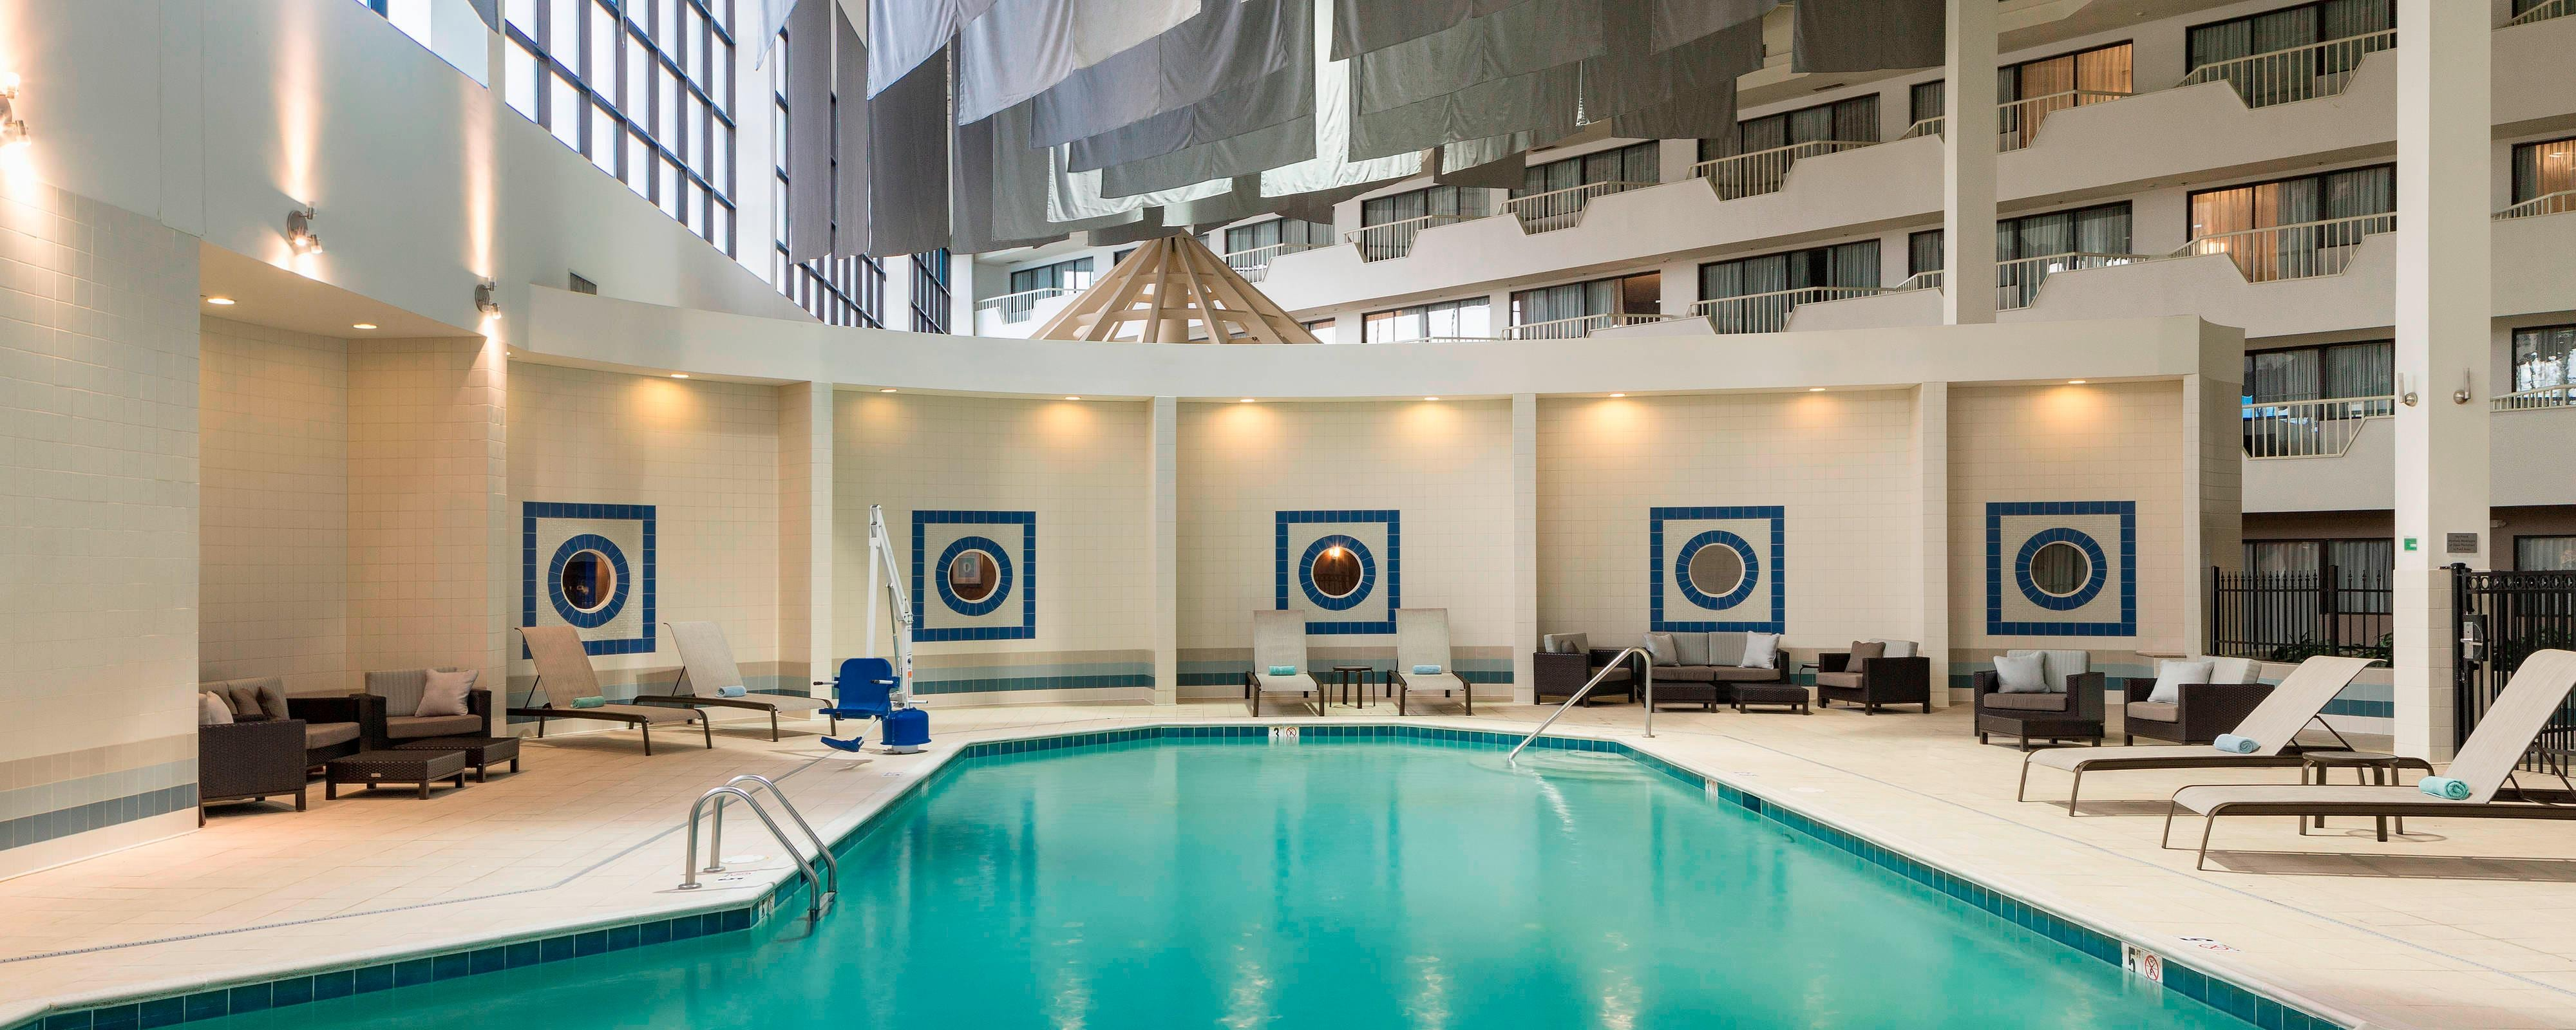 hotels with indoor pool columbus oh courtyard columbus west. Black Bedroom Furniture Sets. Home Design Ideas